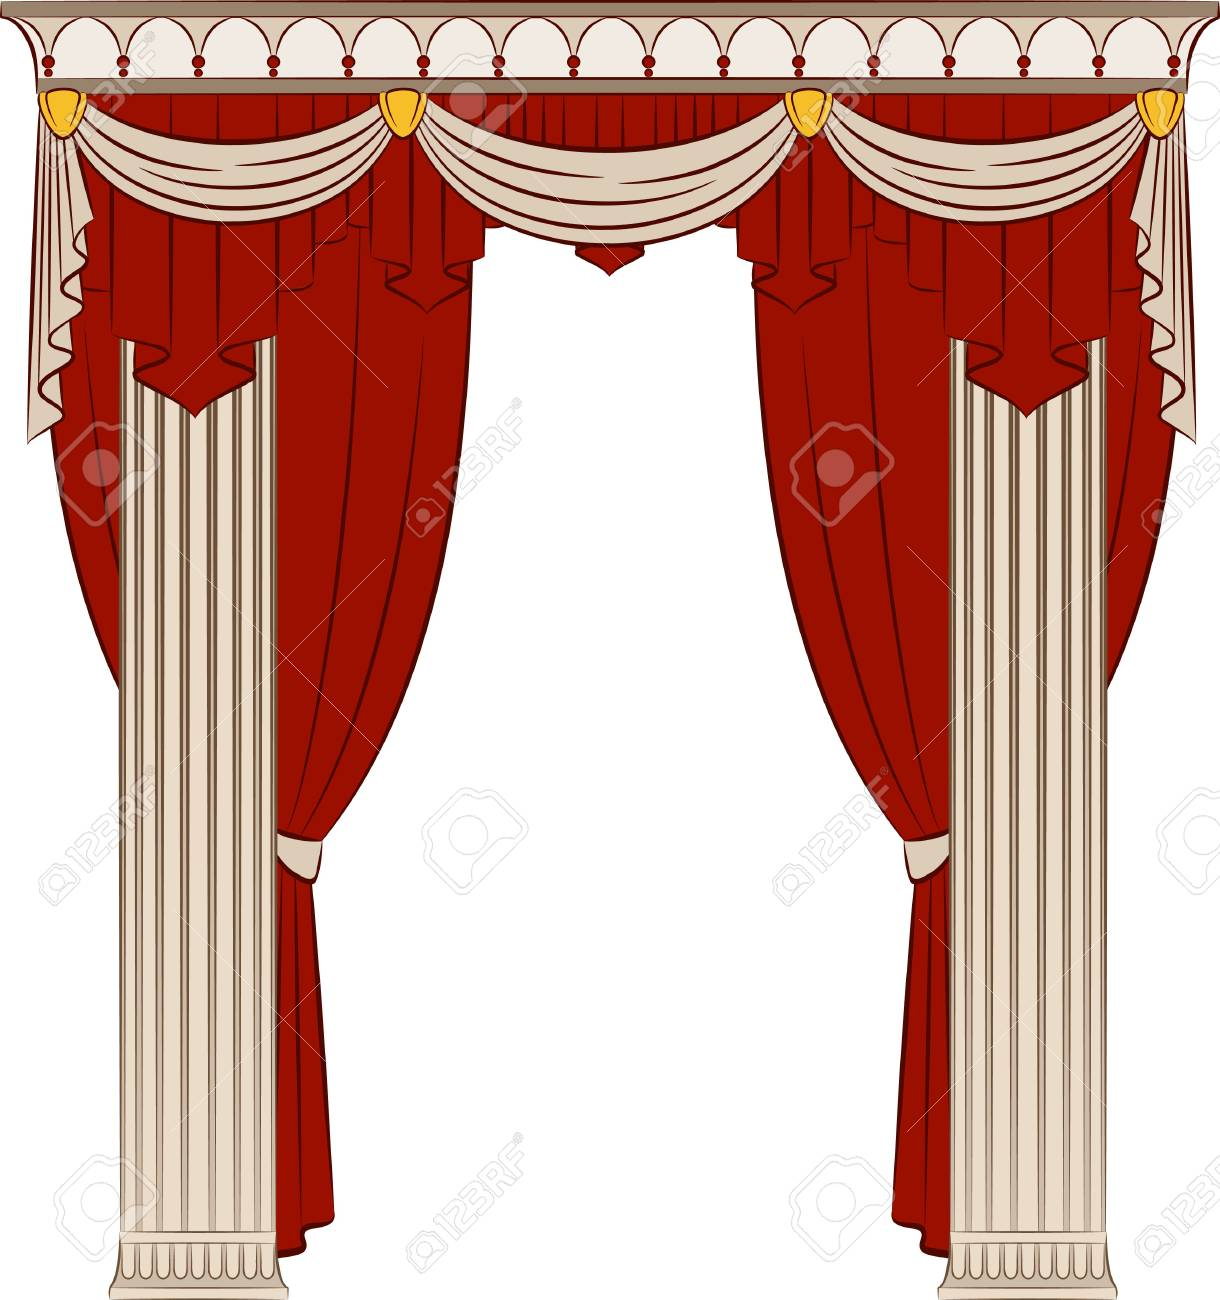 The vintage interior with curtain. - 10610759